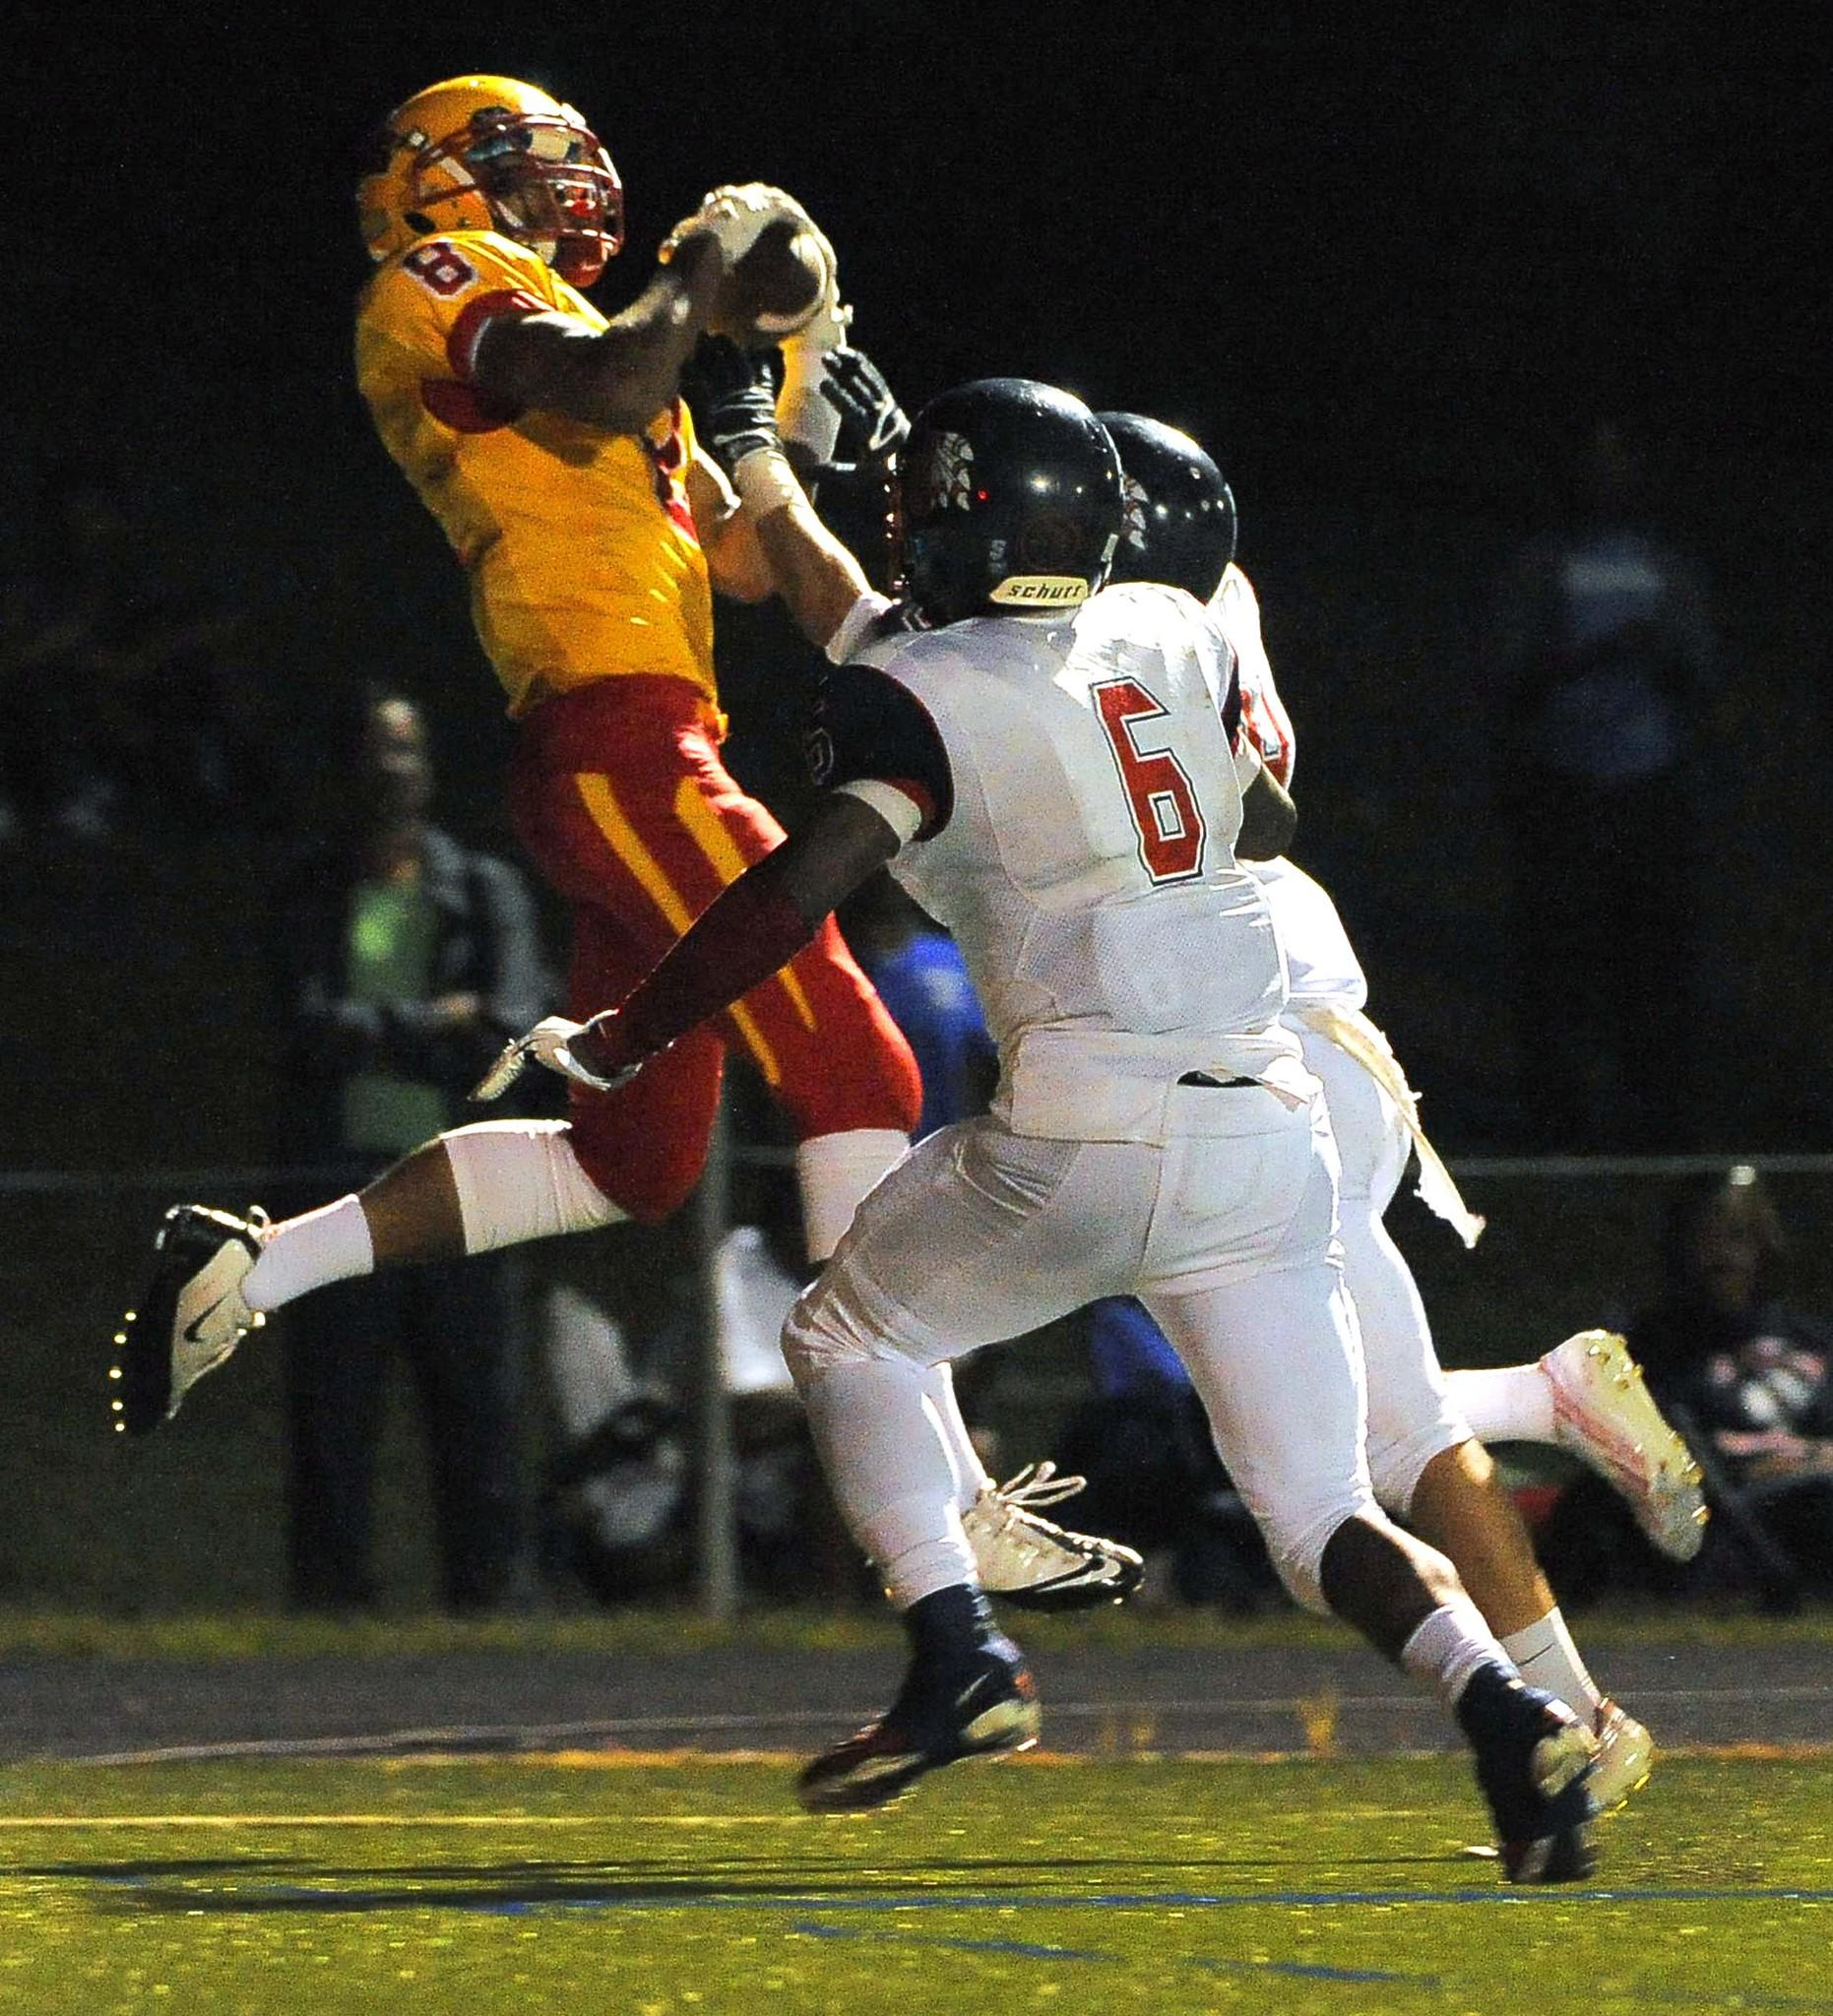 Calvert Hall's Lawrence Cager catches a pass in the end zone for a touchdown above Franklin's Taurus Bruton (6) and R.J. Mays during a game last September.